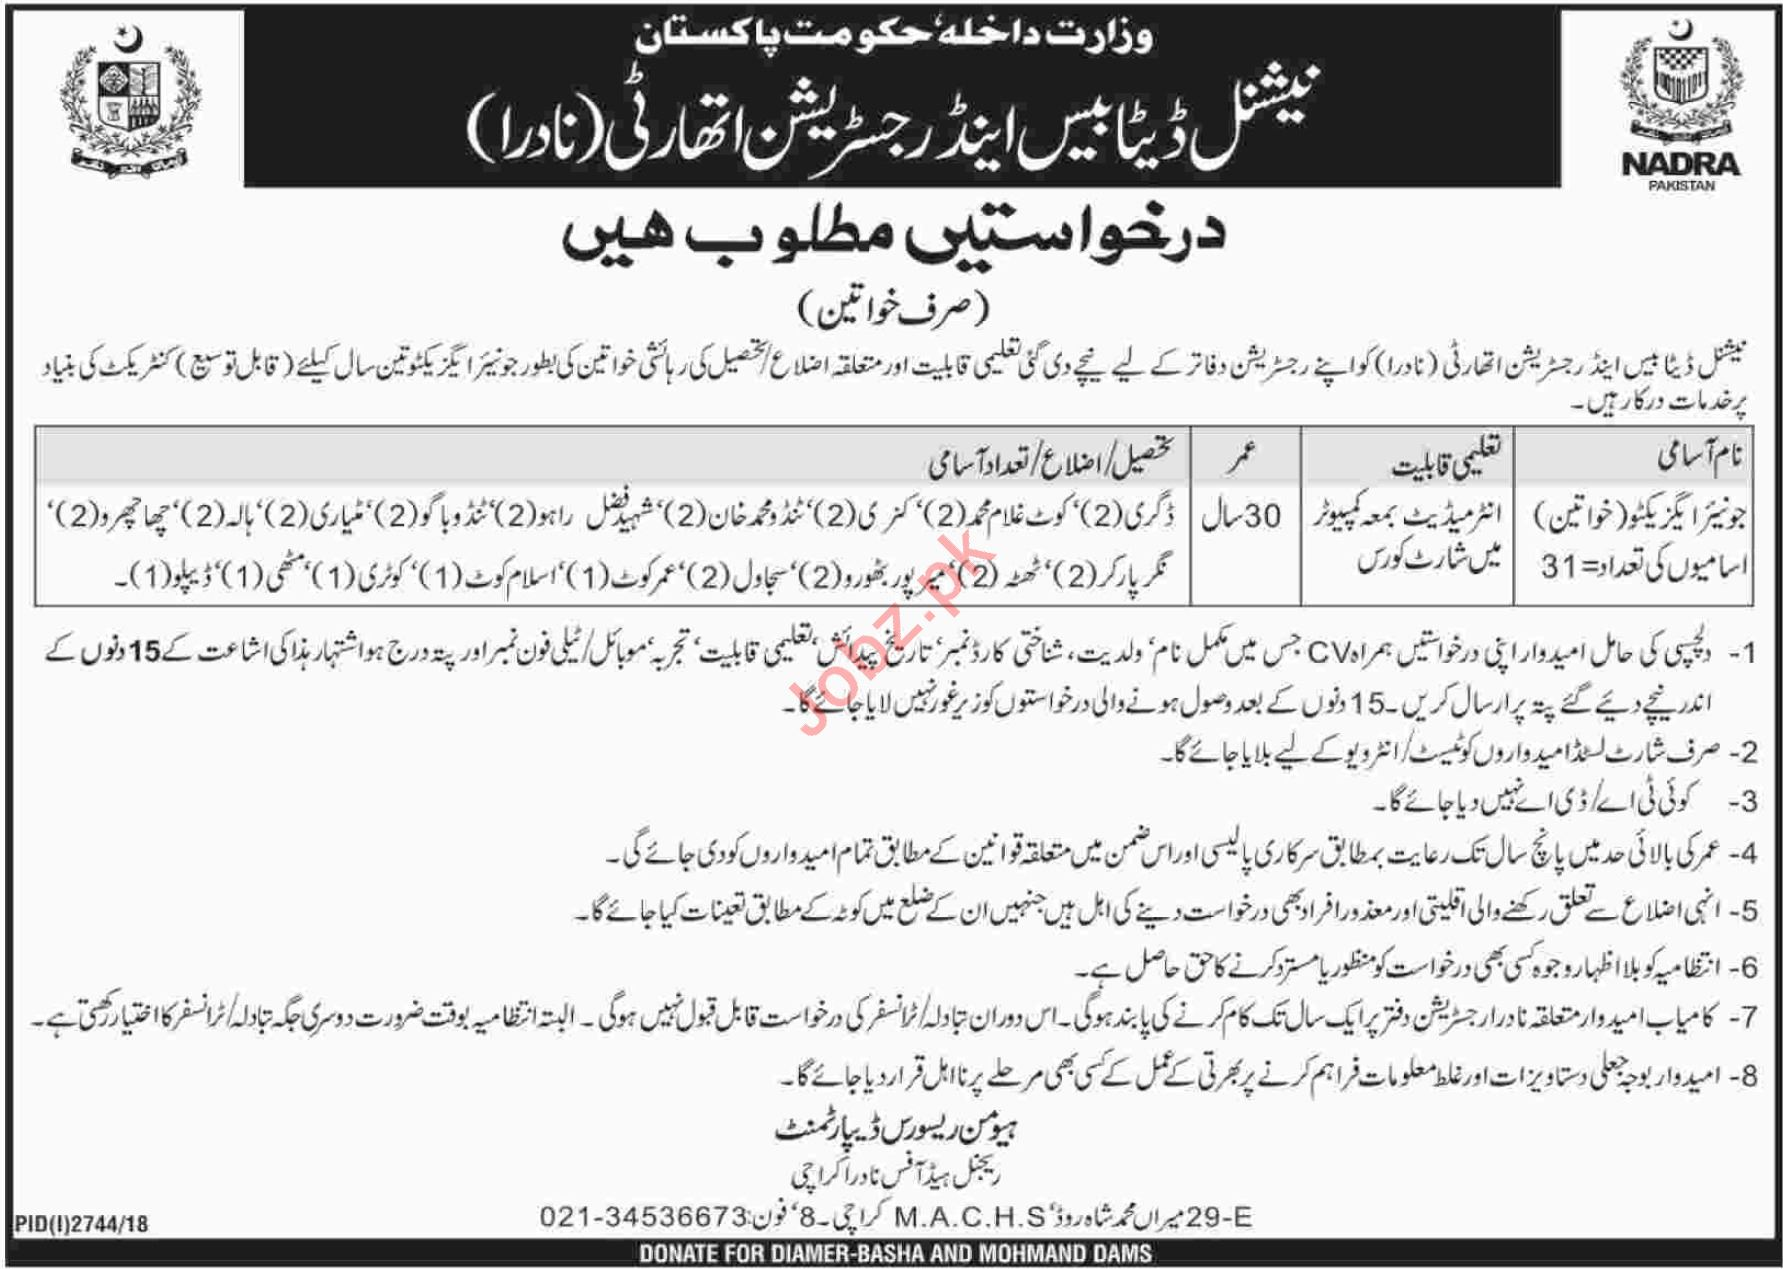 NADRA Regional Head Office Karachi Jobs 2019 Job